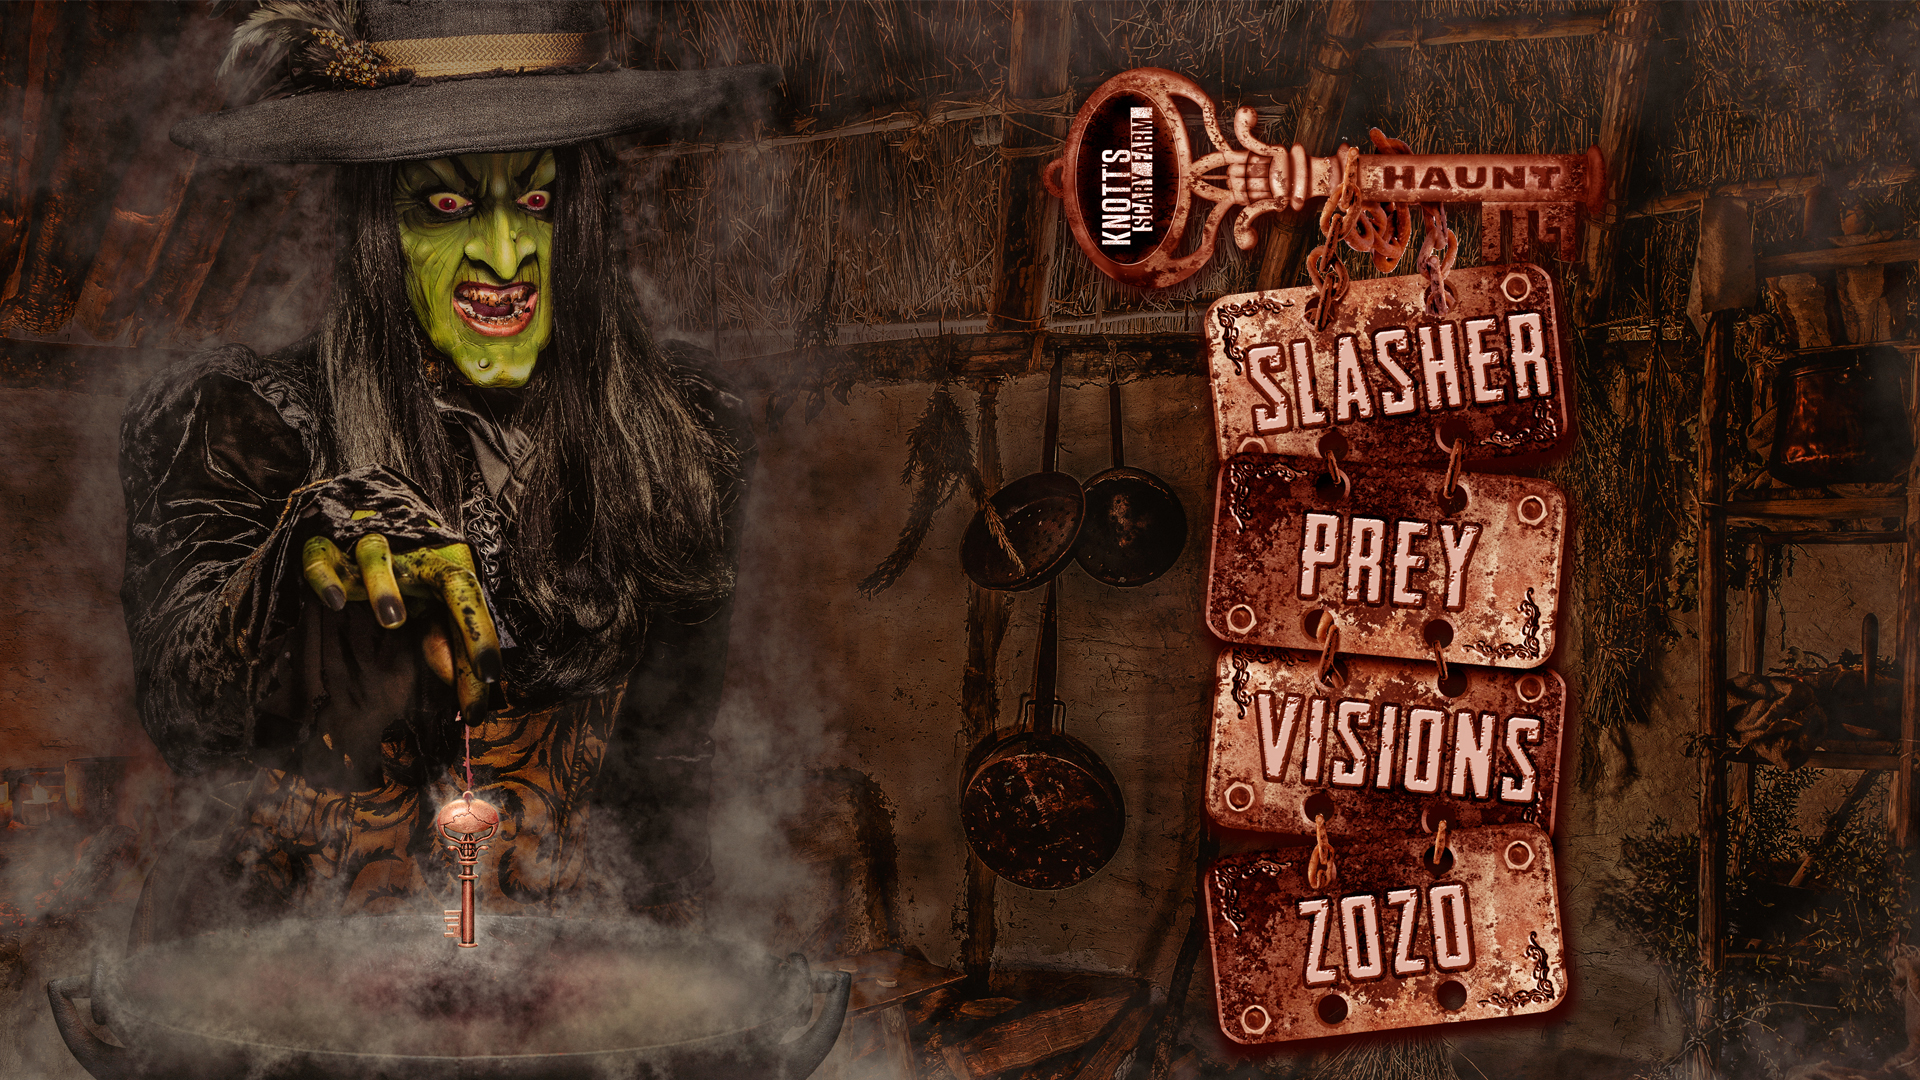 Rather than have them integrated as bonus parts of regular mazes, the Skeleton Key Rooms have been moved to their own standalone attractions, available only to Skeleton Key purchasers. (Image courtesy of Knott's Scary Farm)